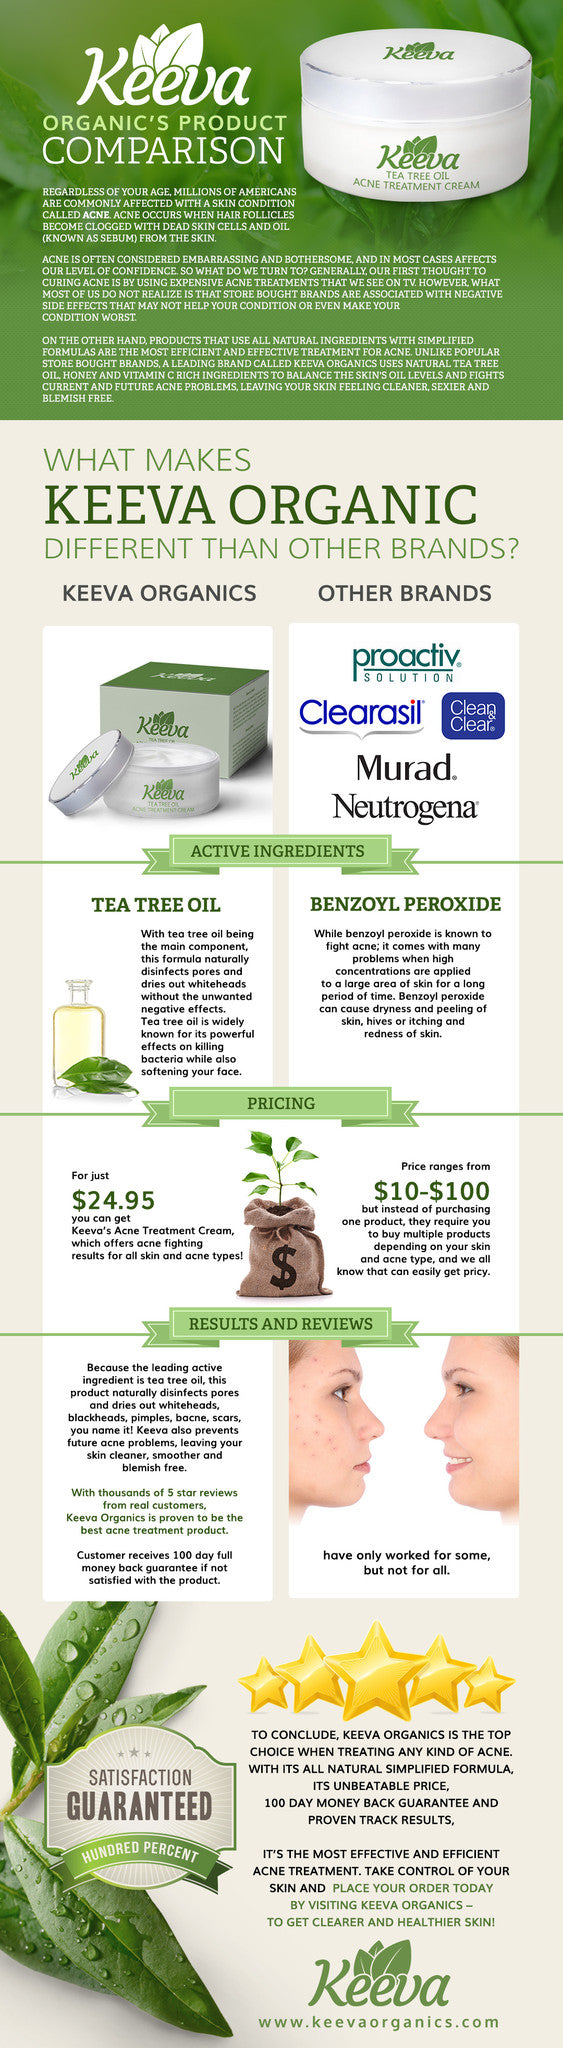 Keeva Organic Product Comparison Infographic